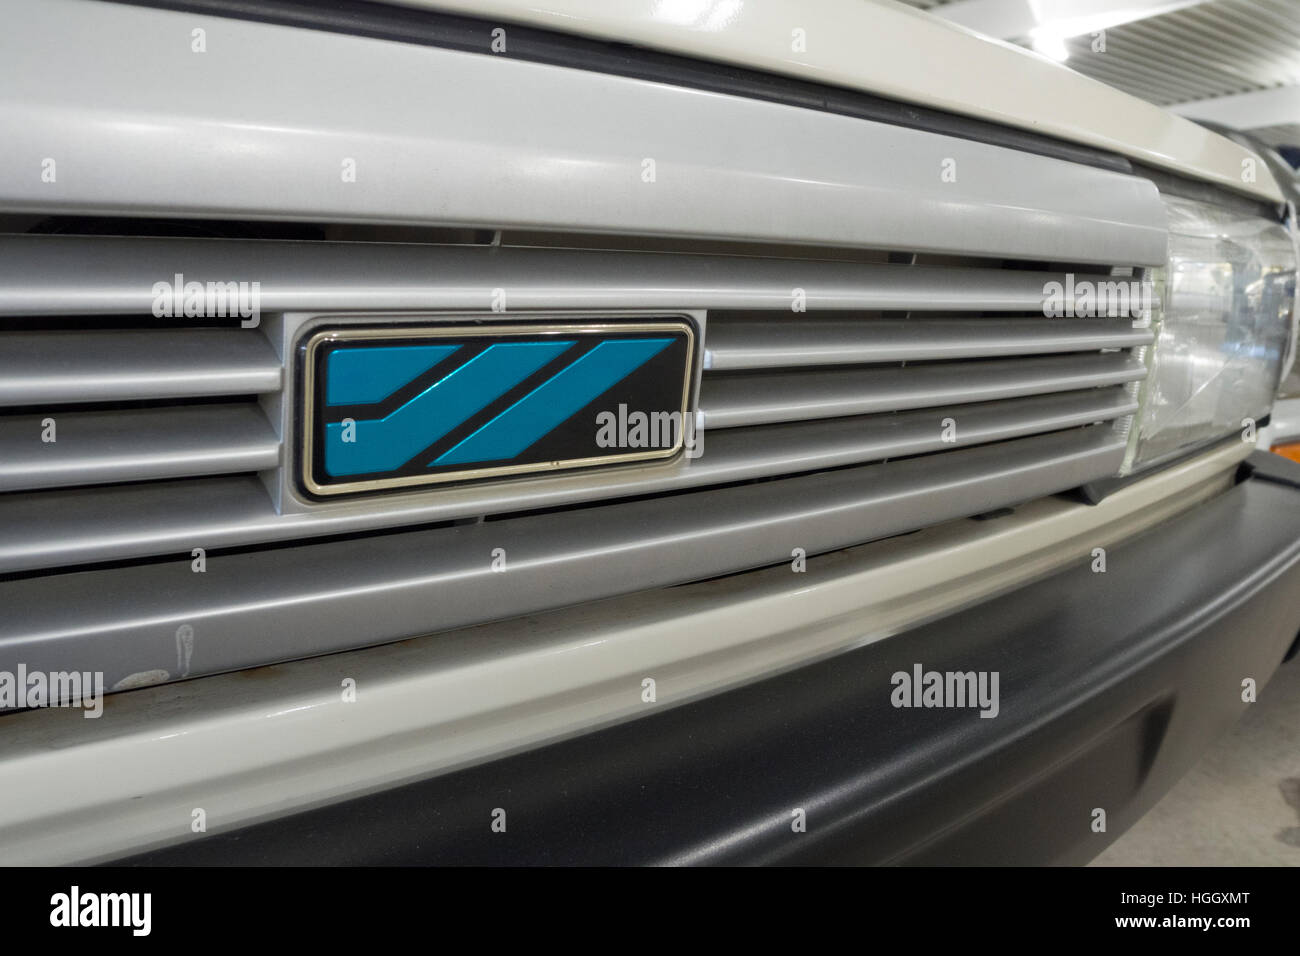 Austin Rover Maestro Hatchback Car, UK - Stock Image